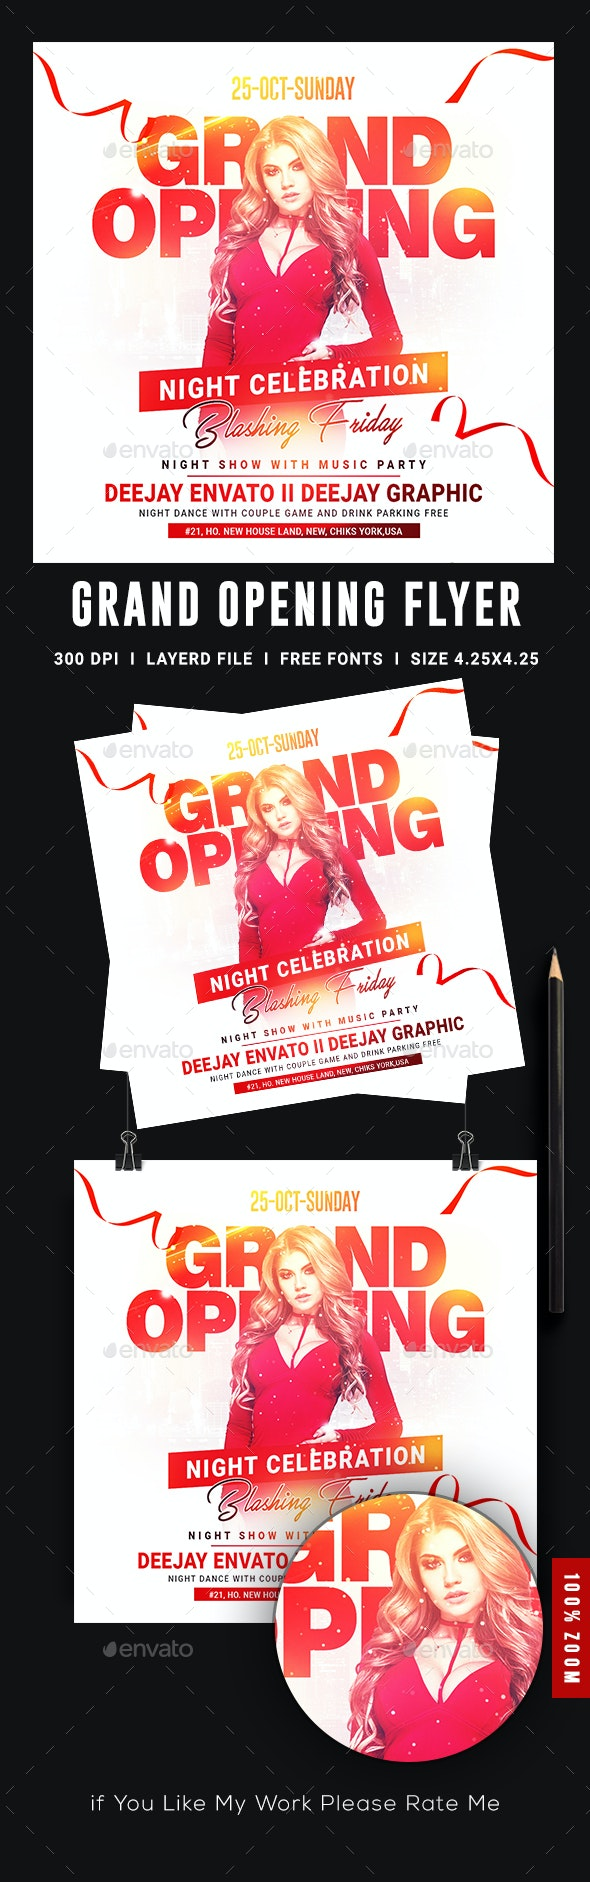 Grand Opening Flyer - Flyers Print Templates